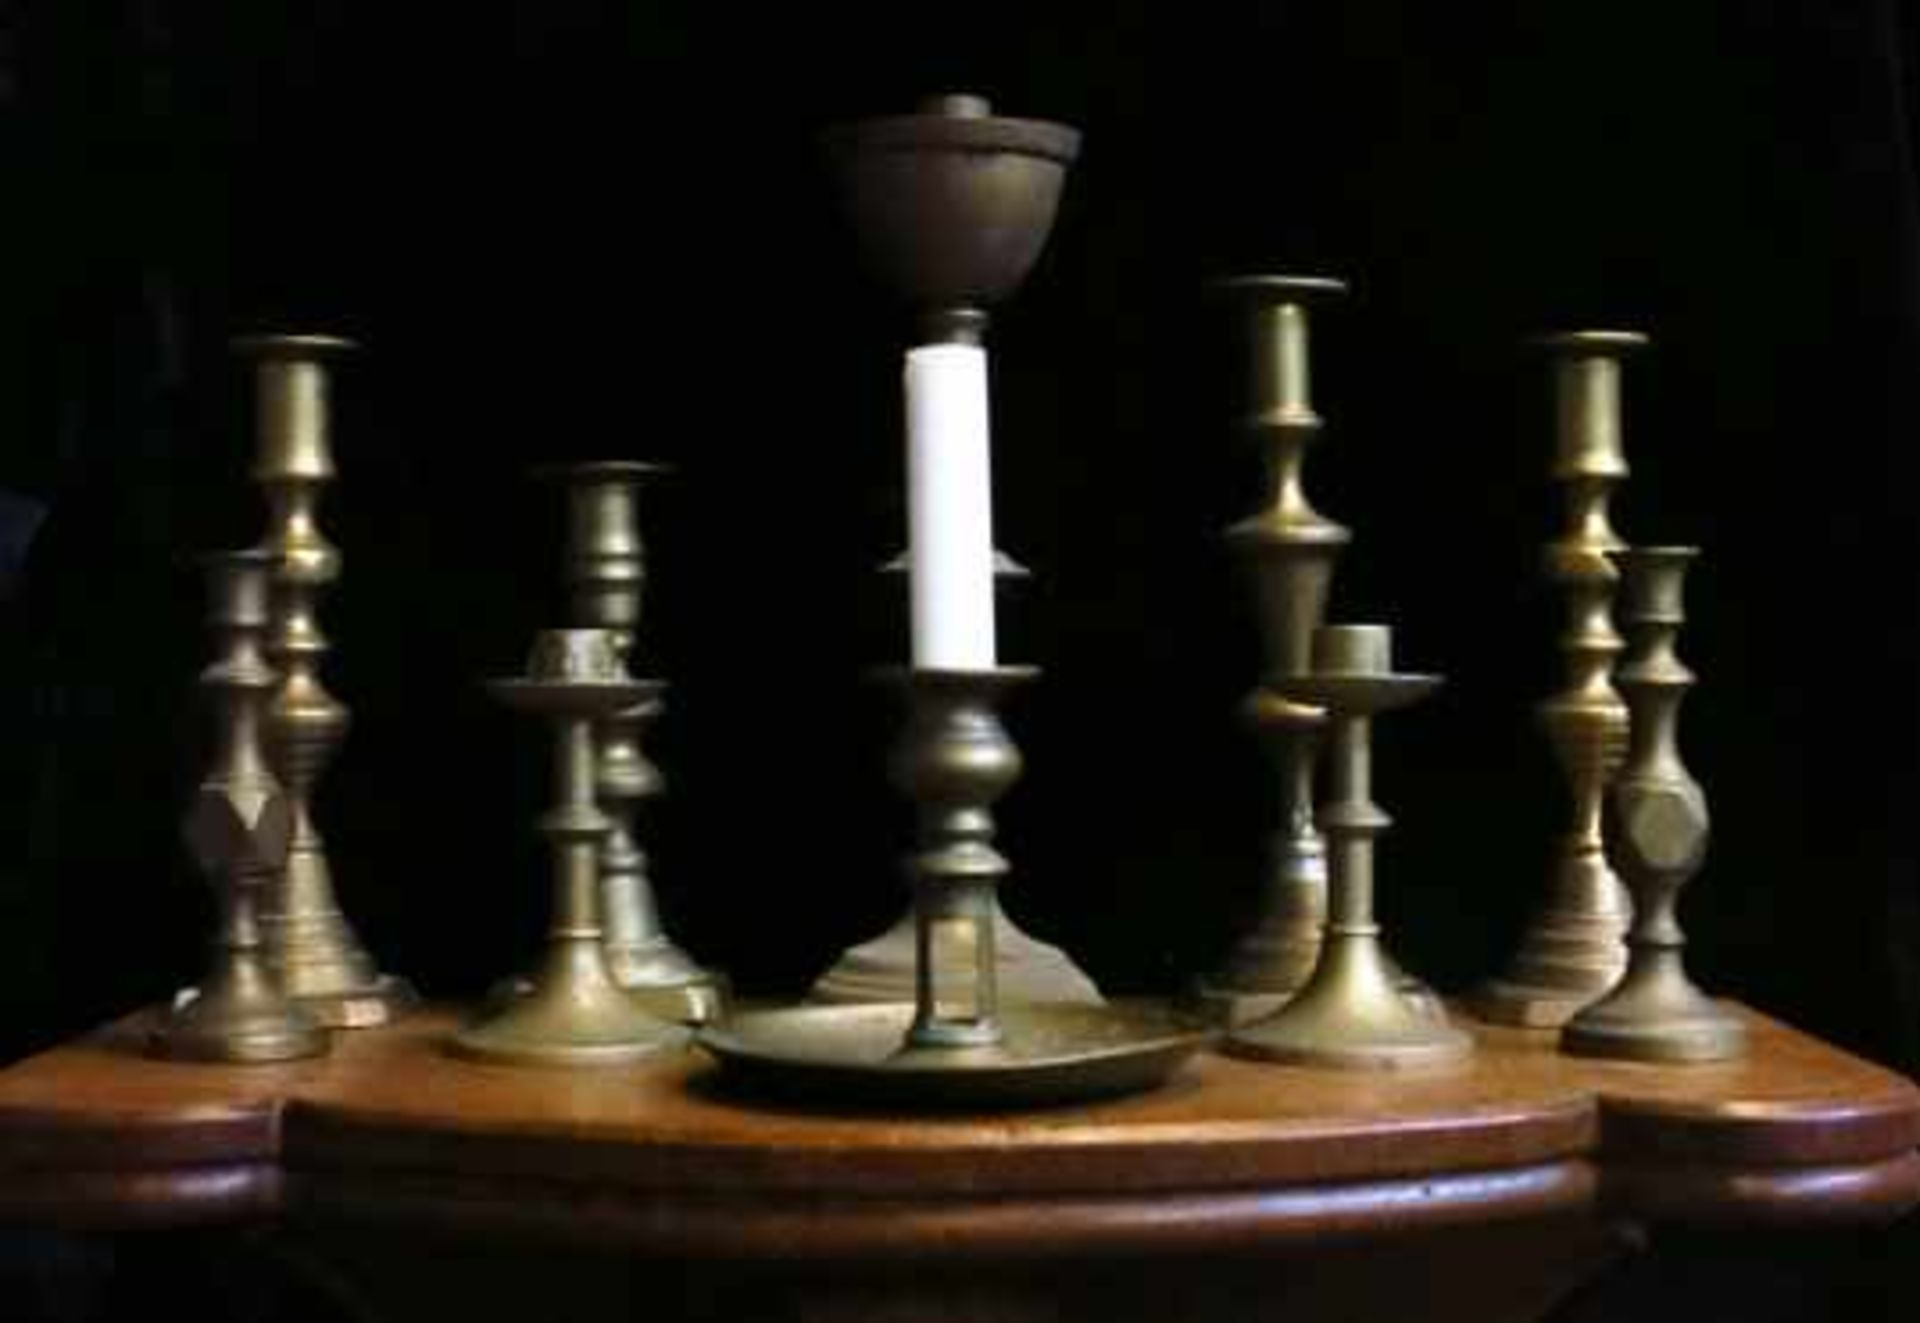 Assorted Lot of 10 Antique Brass Candlesticks - Image 3 of 6